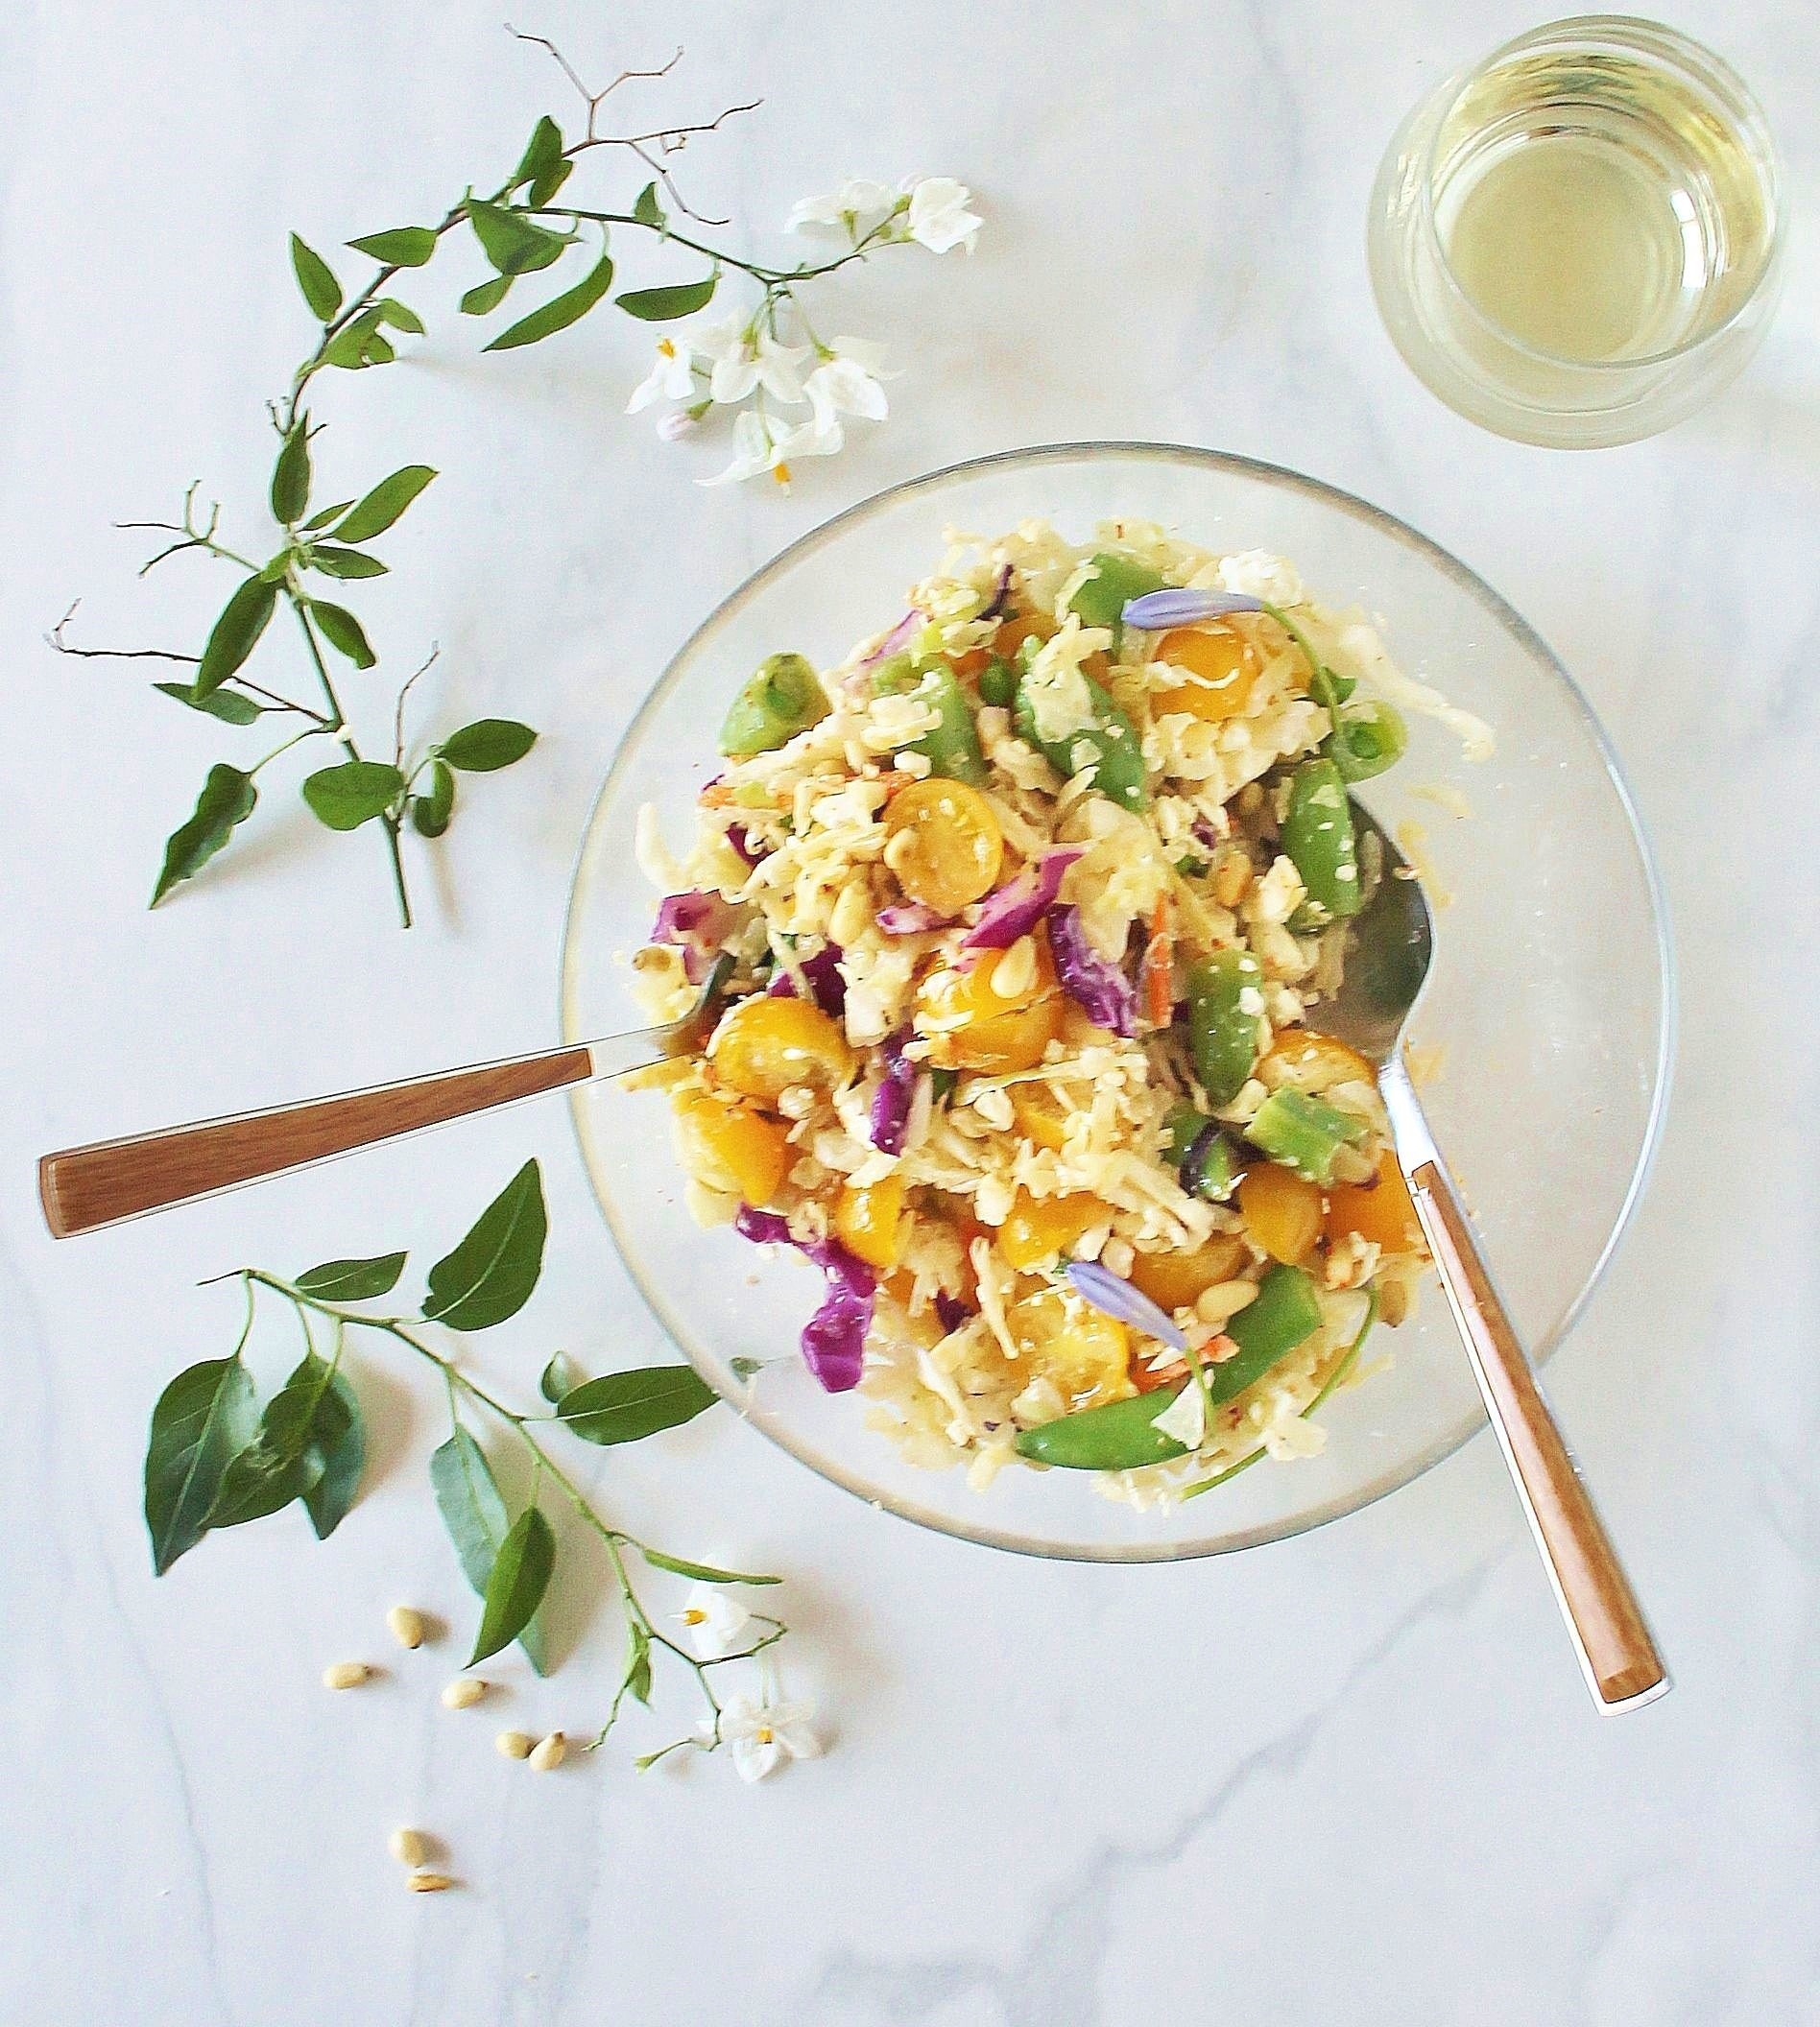 Tangy Summer Slaw with Chile-Lime Dressing